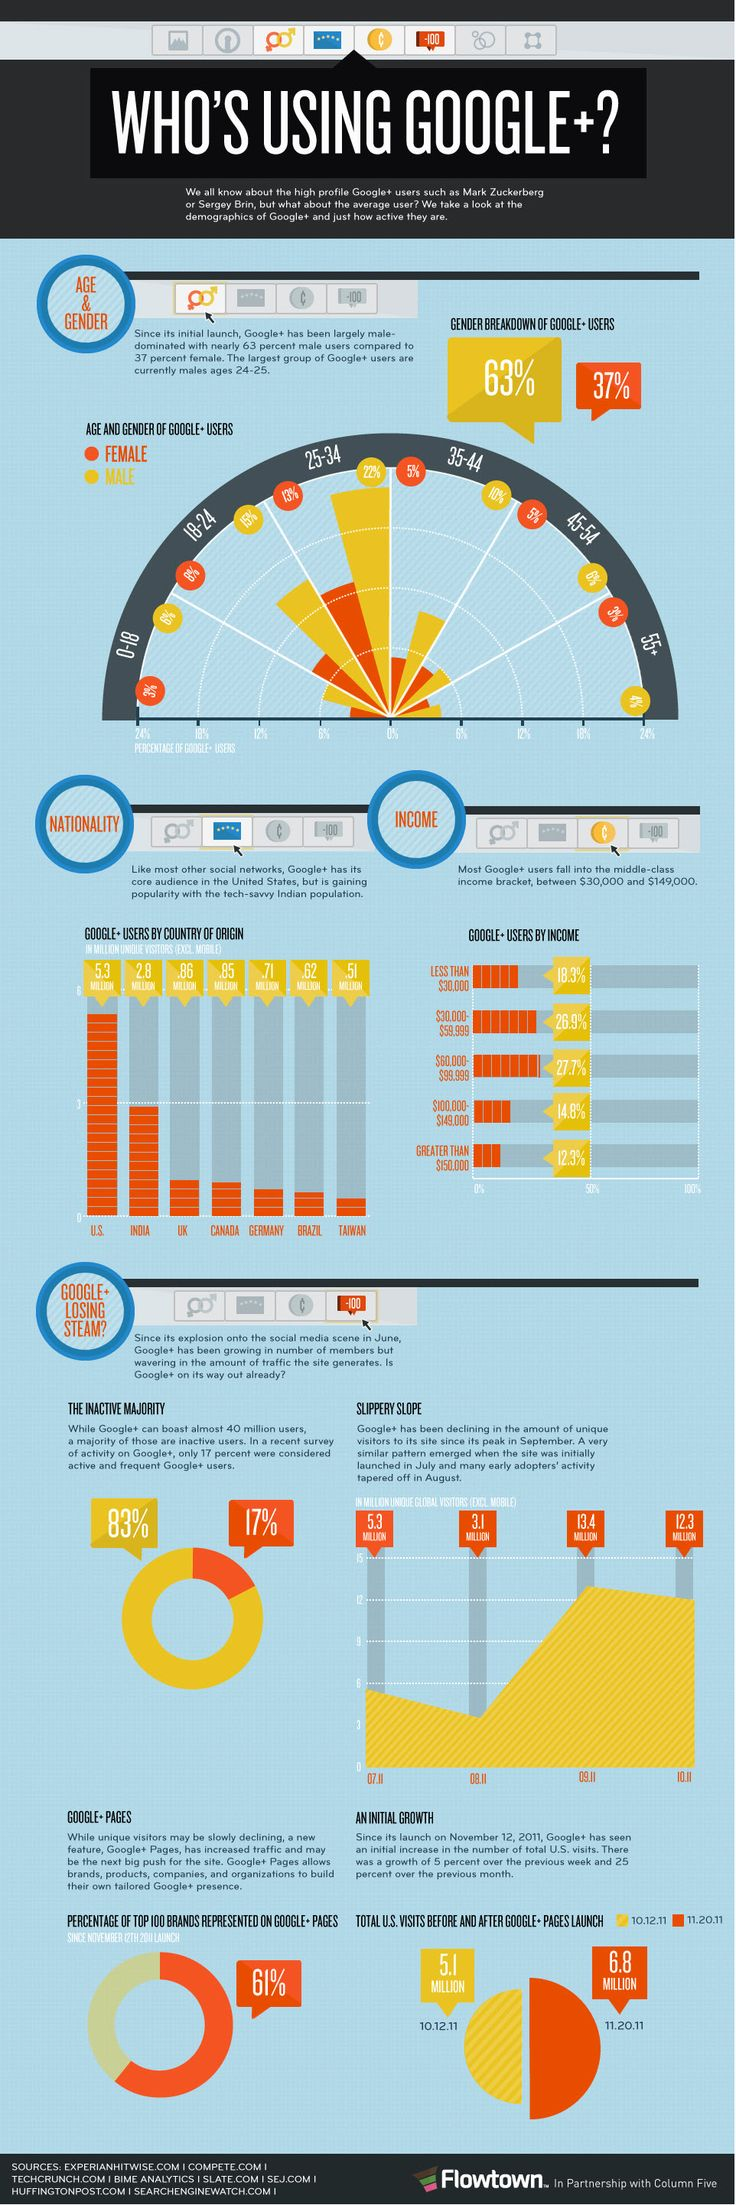 As more and more businesses are paying more attention to Google+ this info graphics provides good basic statistics on Google+ users.